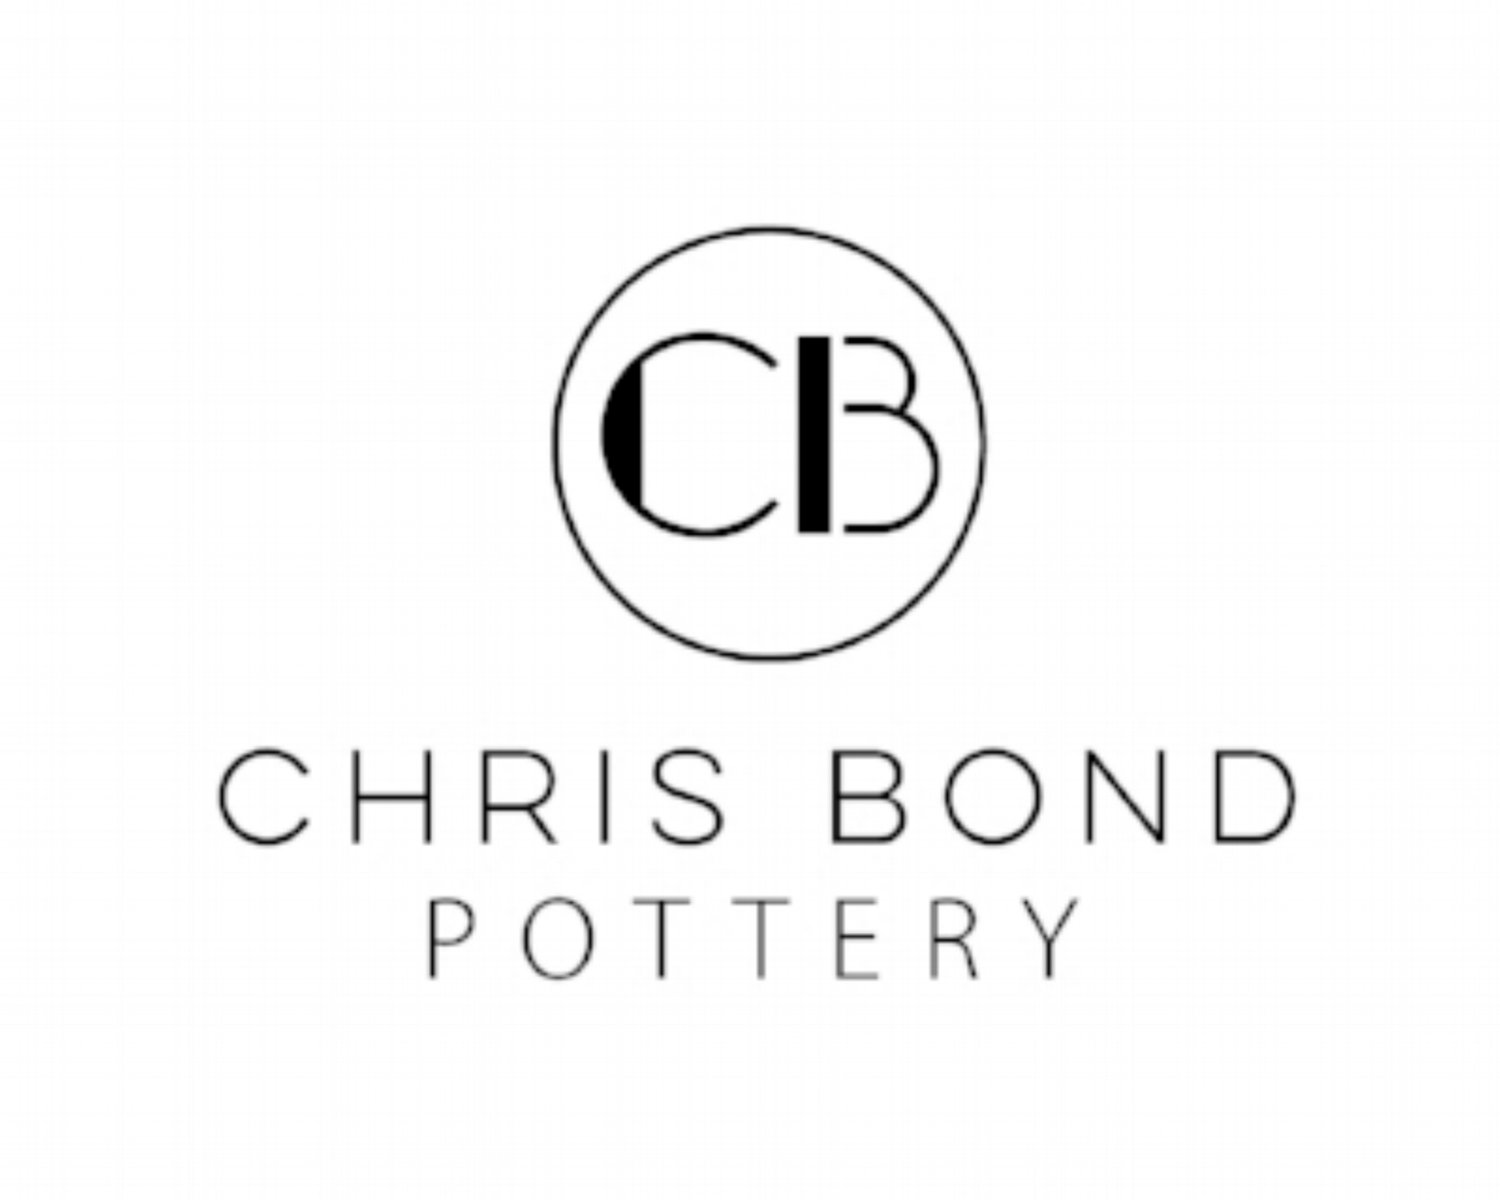 Chris Bond Pottery